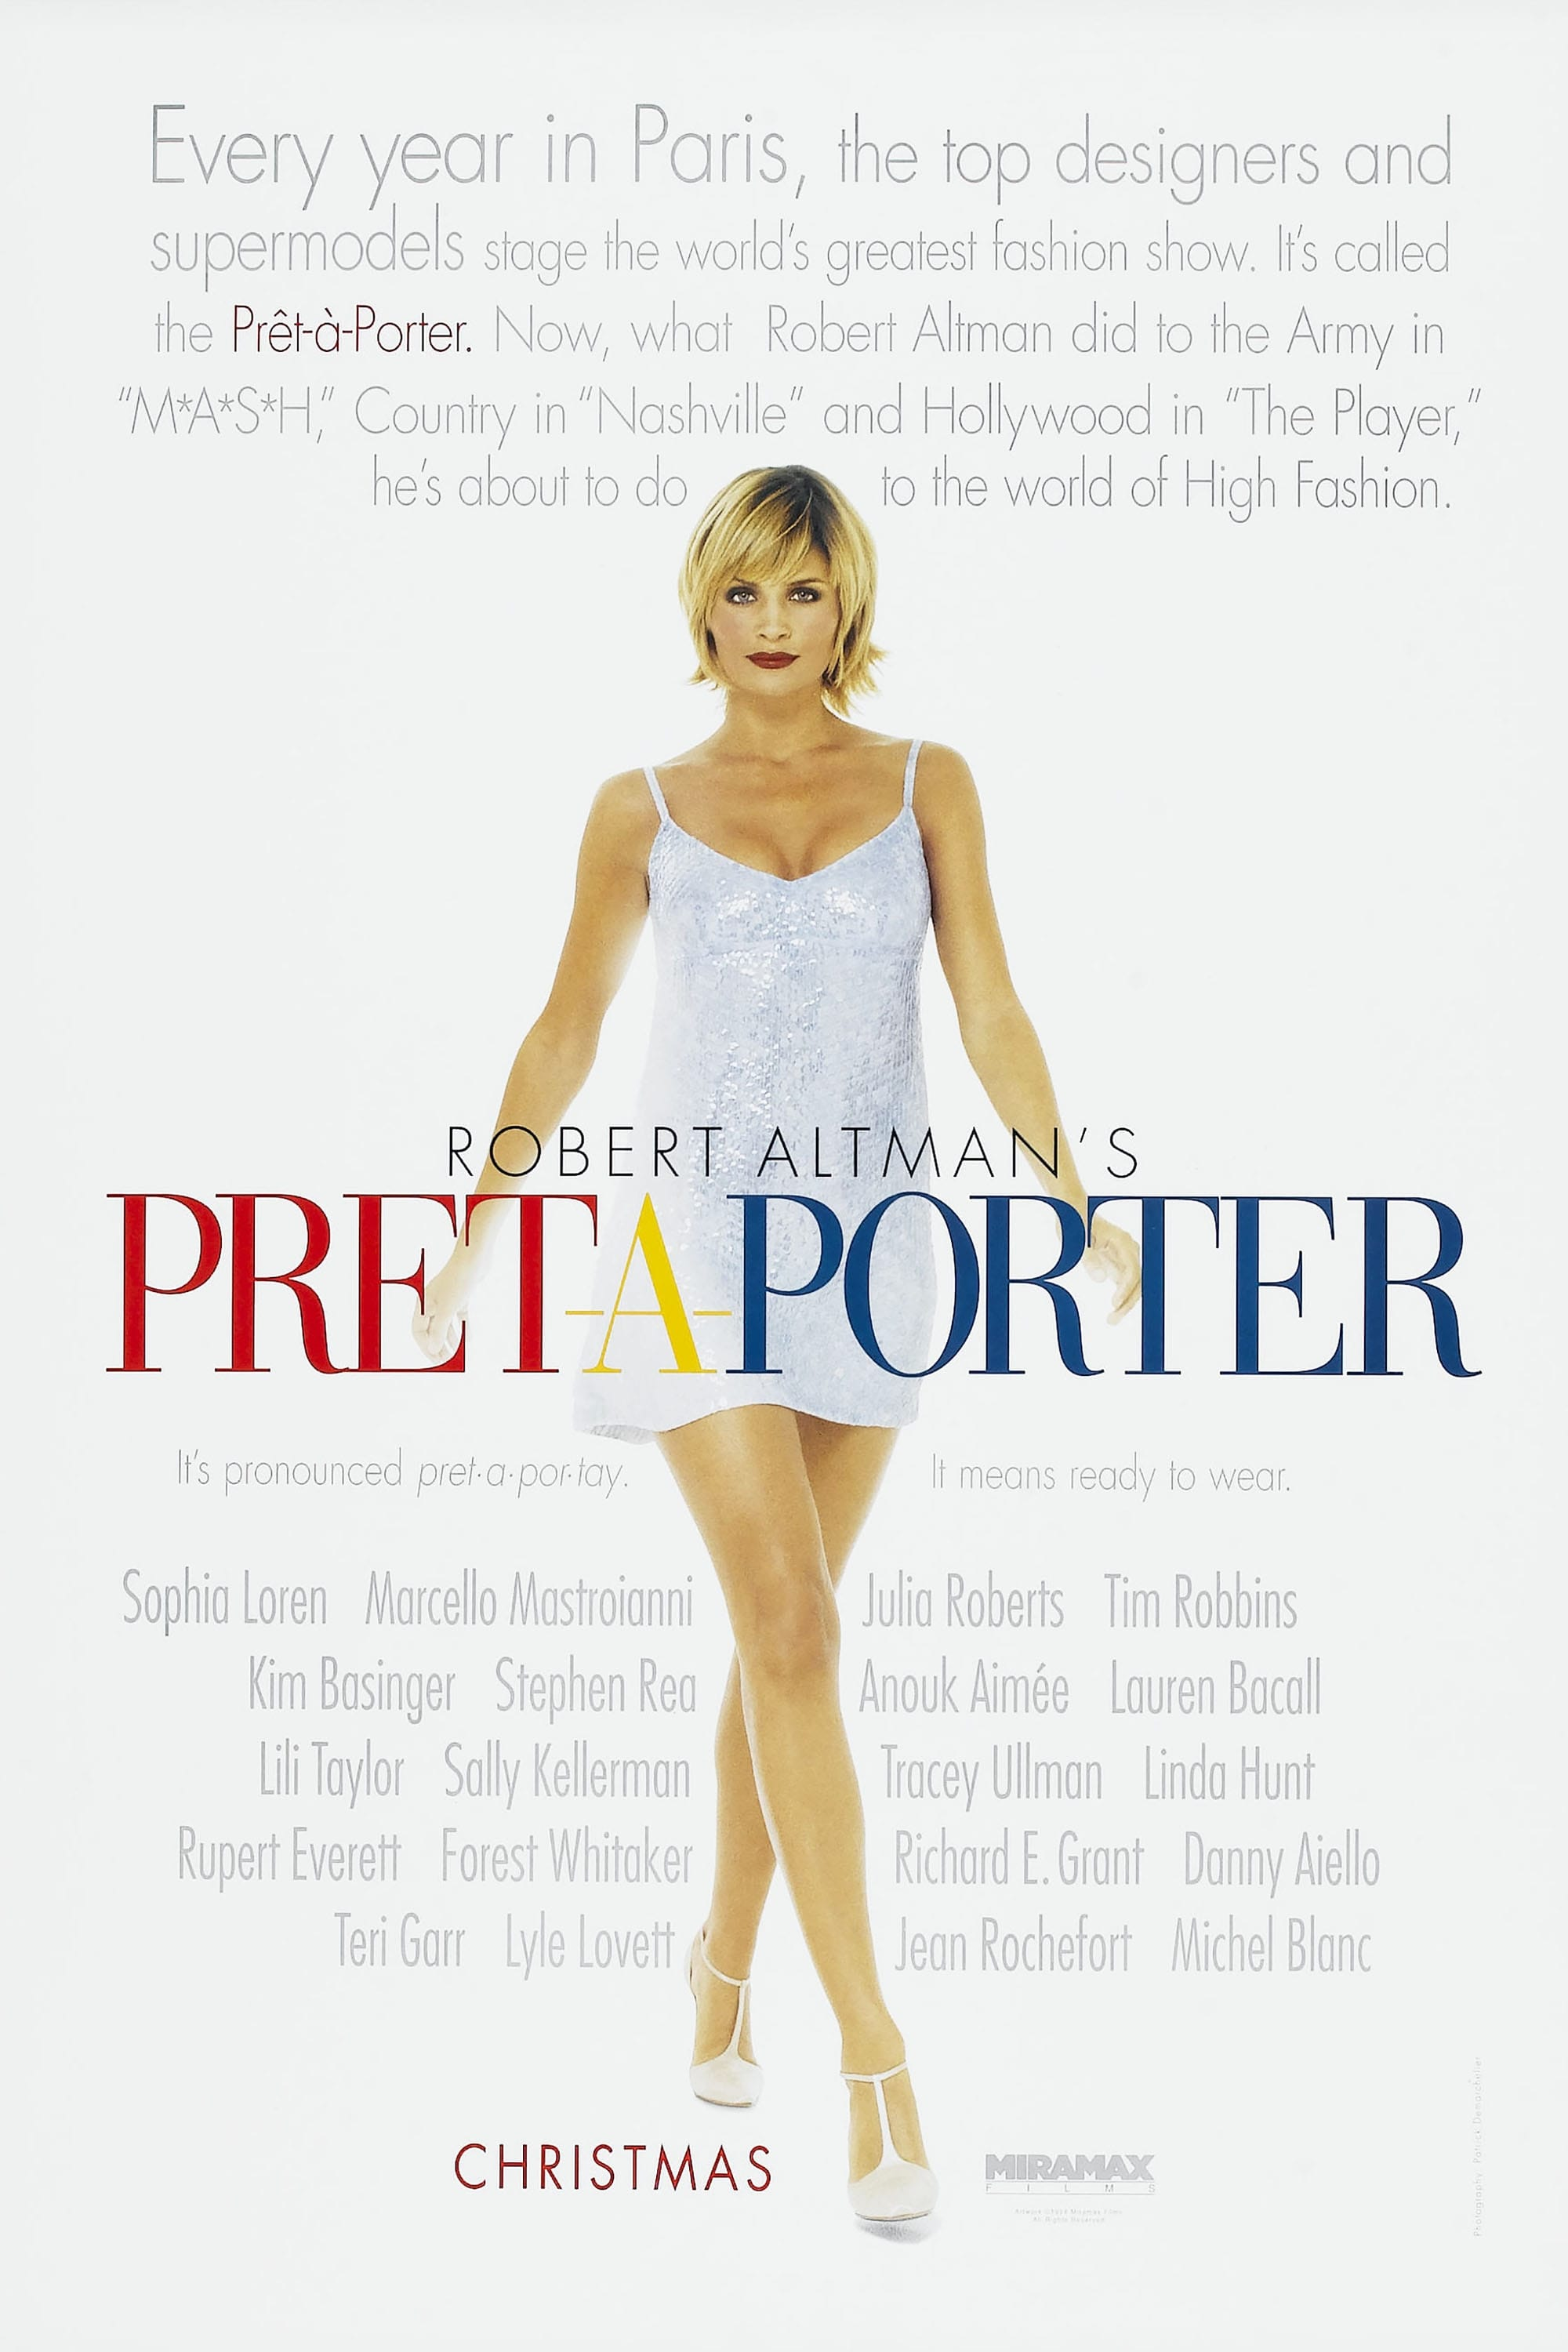 Le Meilleur Prêt À Porter 1994 Movie Robert Altman Waatch Co Ce Mois Ci